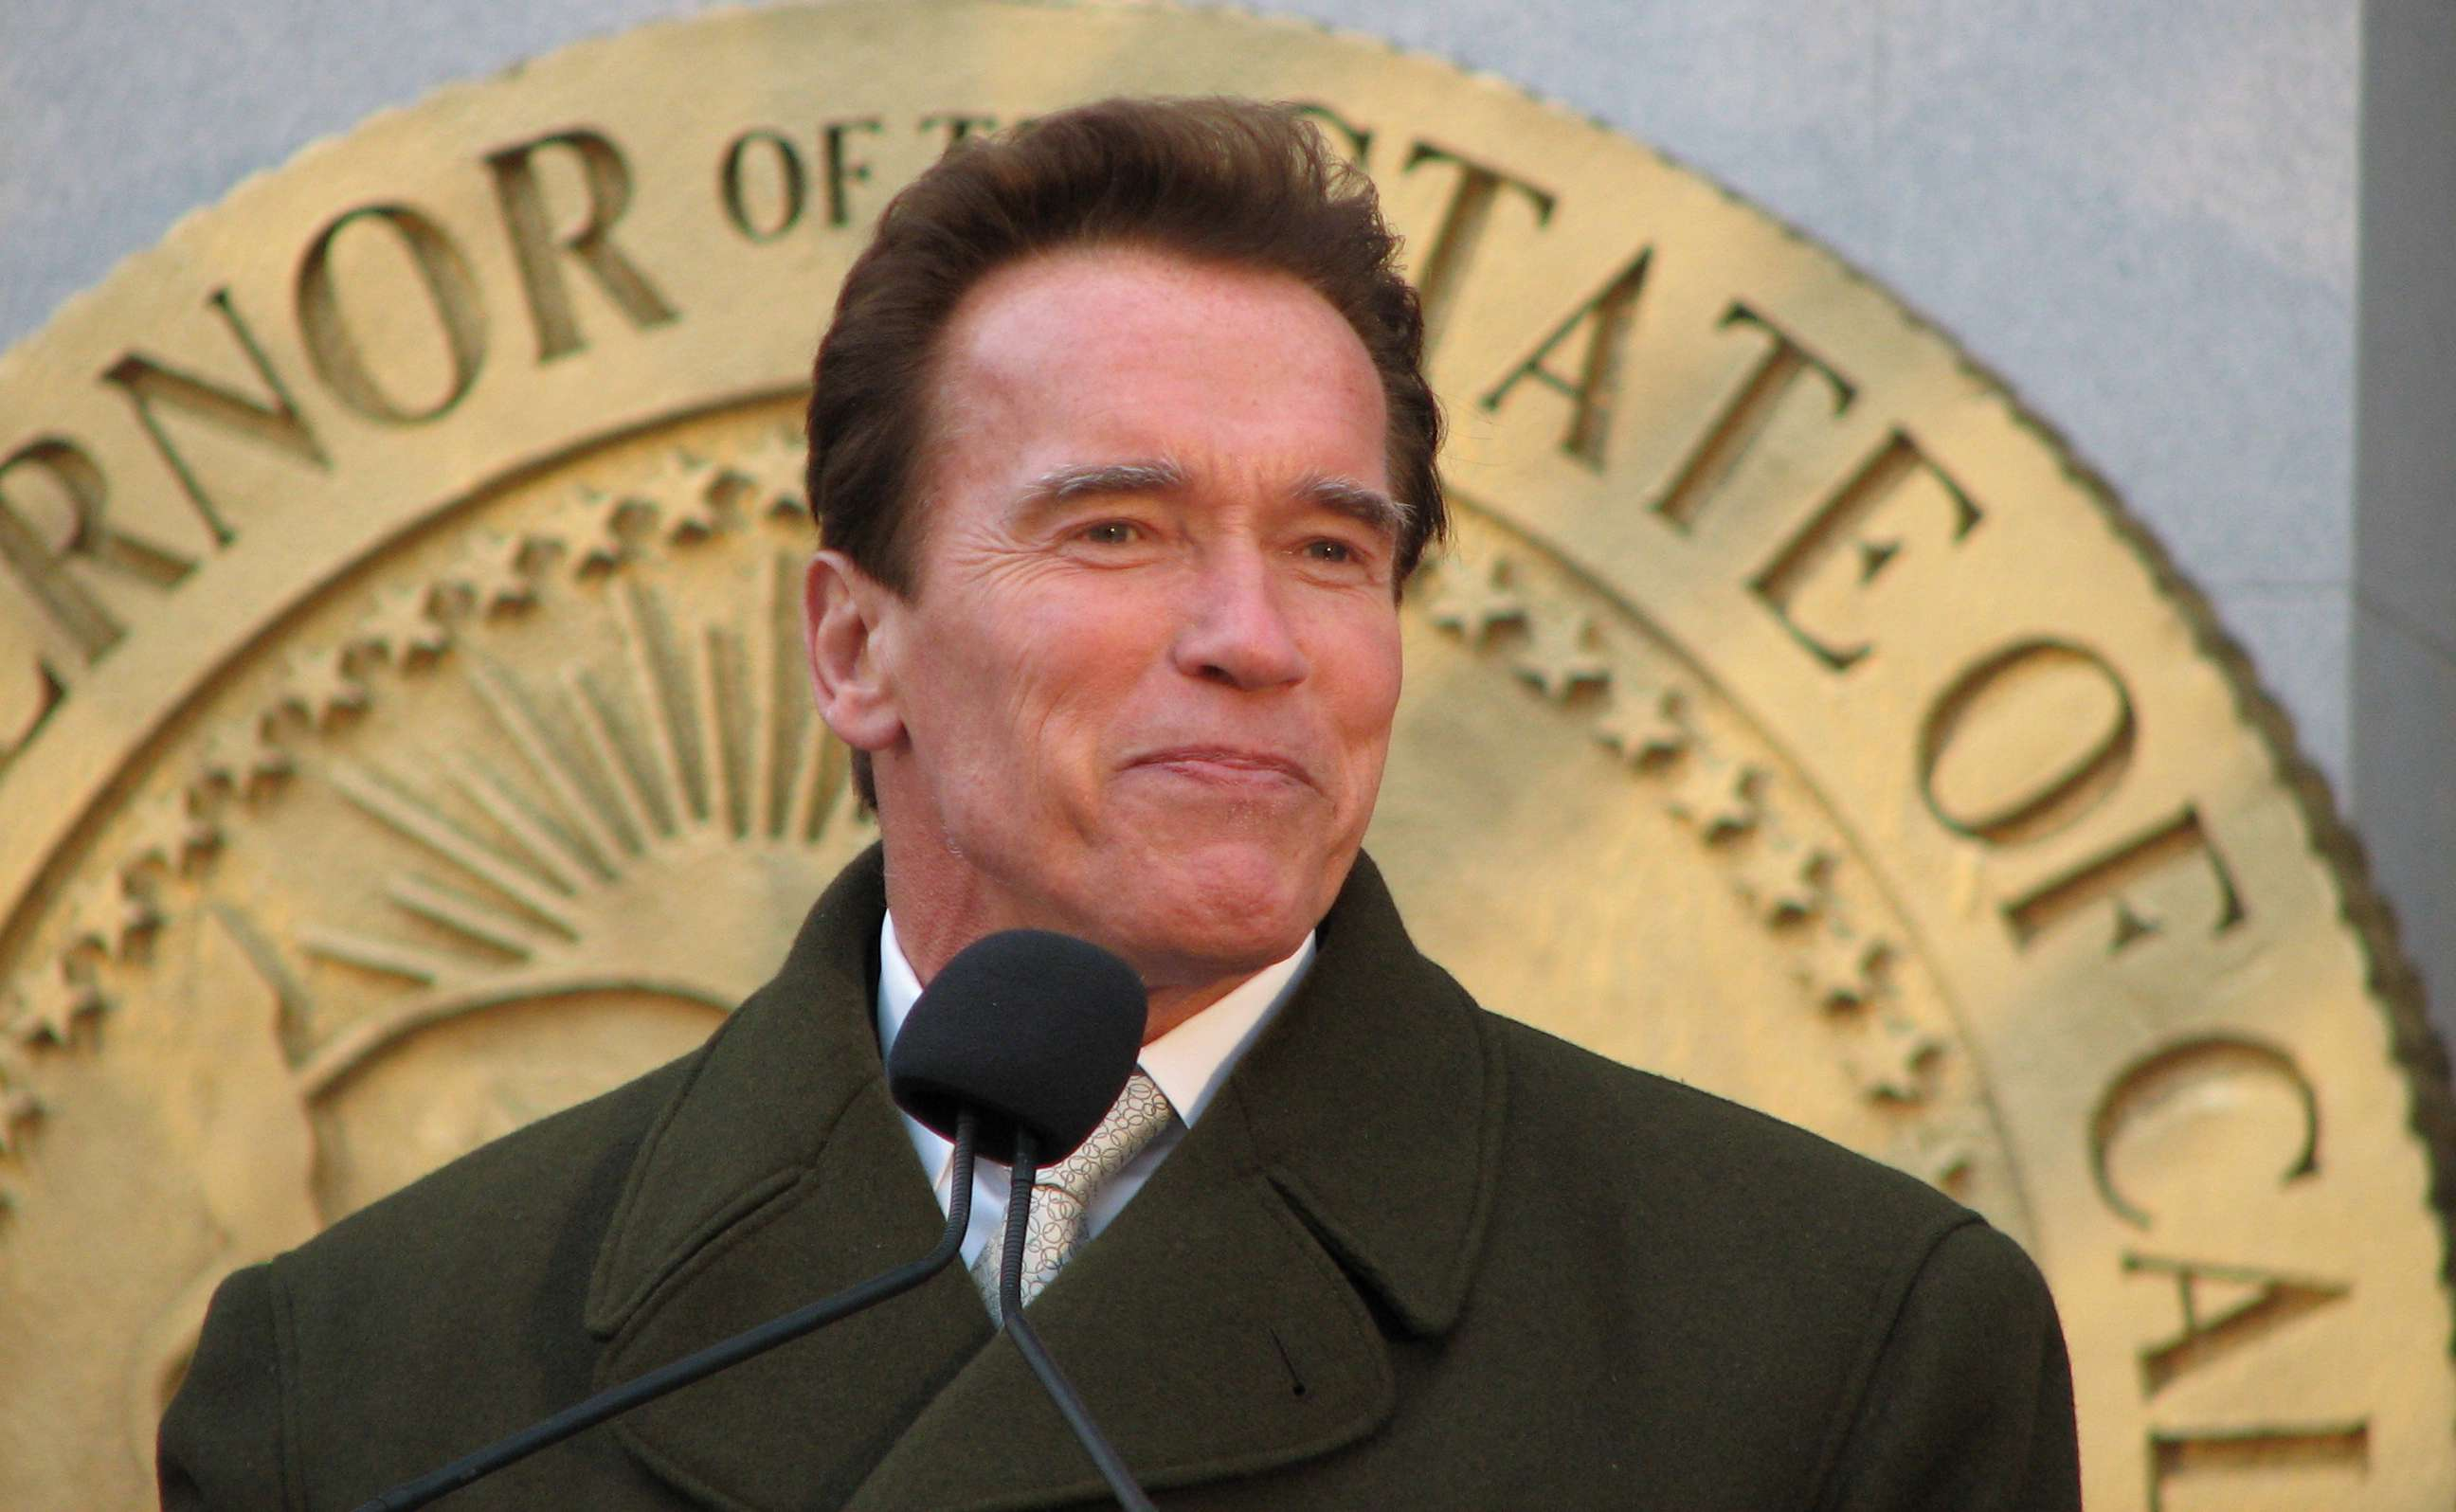 Arnold Schwarzenegger says Im back listed as stable after heart surgery